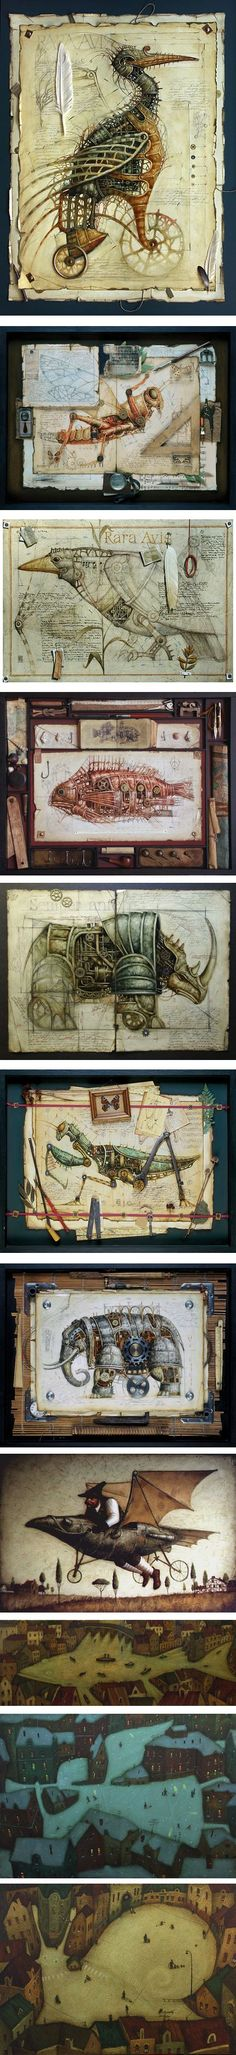 Vladimir Gvozdeff is an artist who works in both two and three dimensional media, often combining them in the same work. Steampunk Kunst, Steampunk Artwork, Collage Art, Collages, Exquisite Corpse, Weird Art, Strange Art, Mixed Media Art, Altered Art